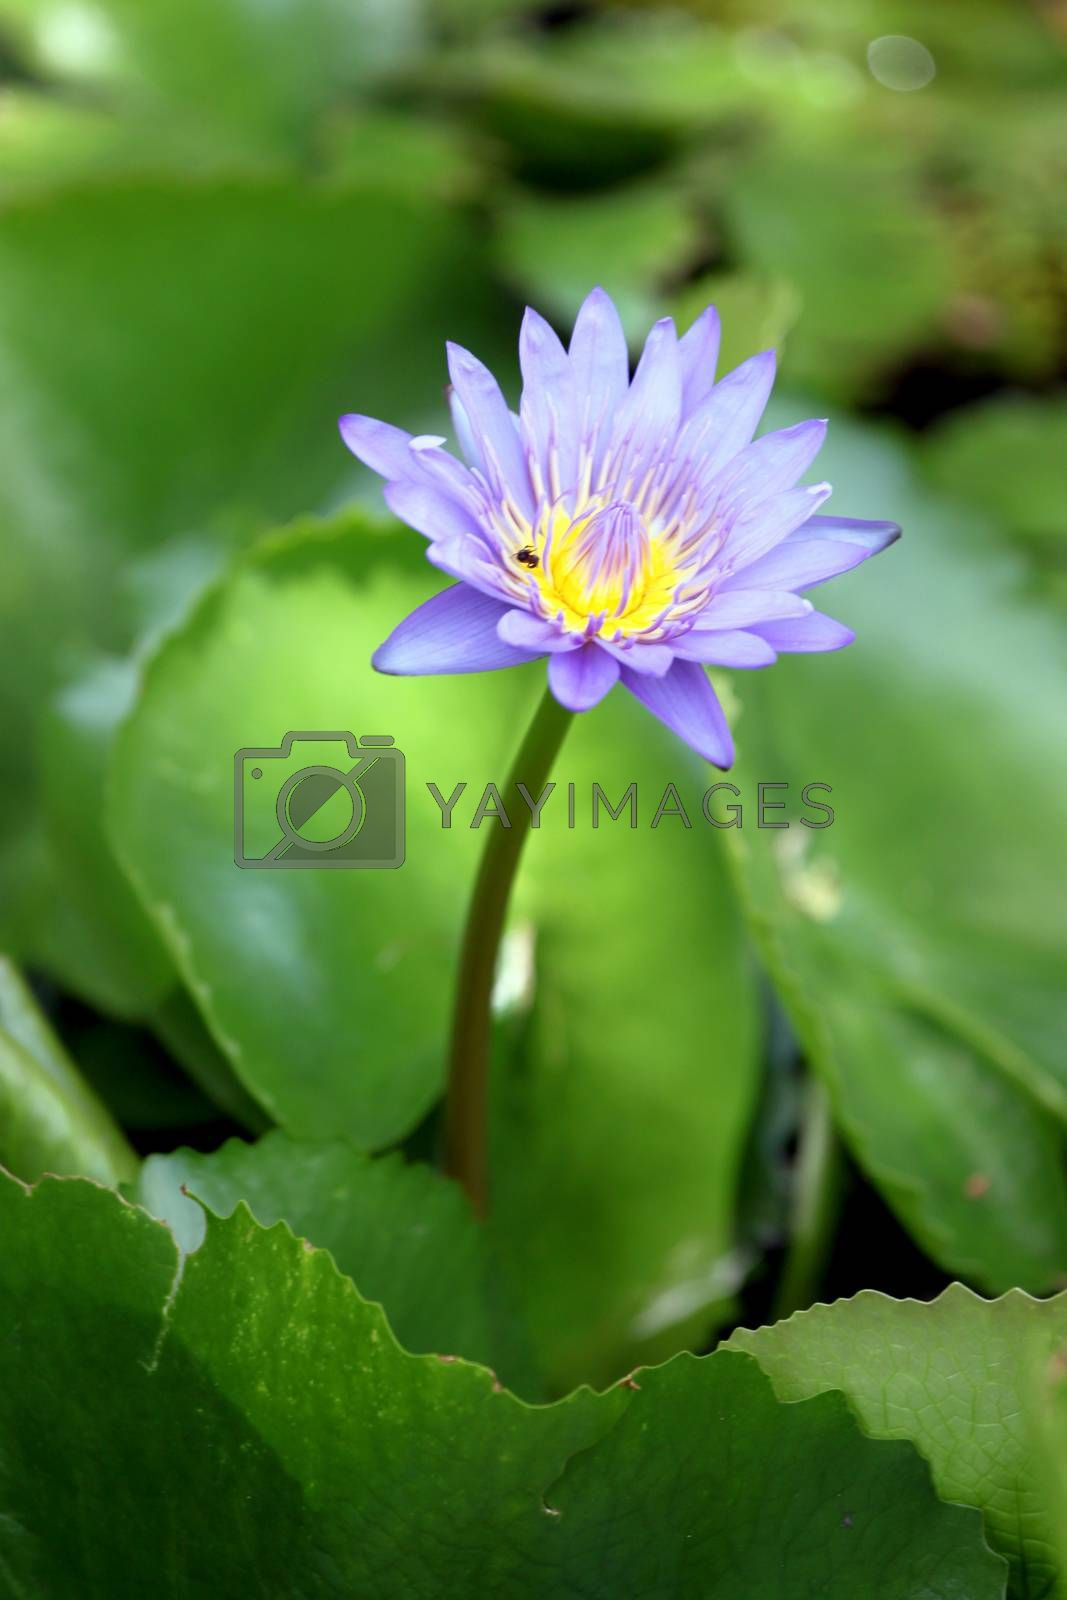 The Violet lotus in focus of Hight view.